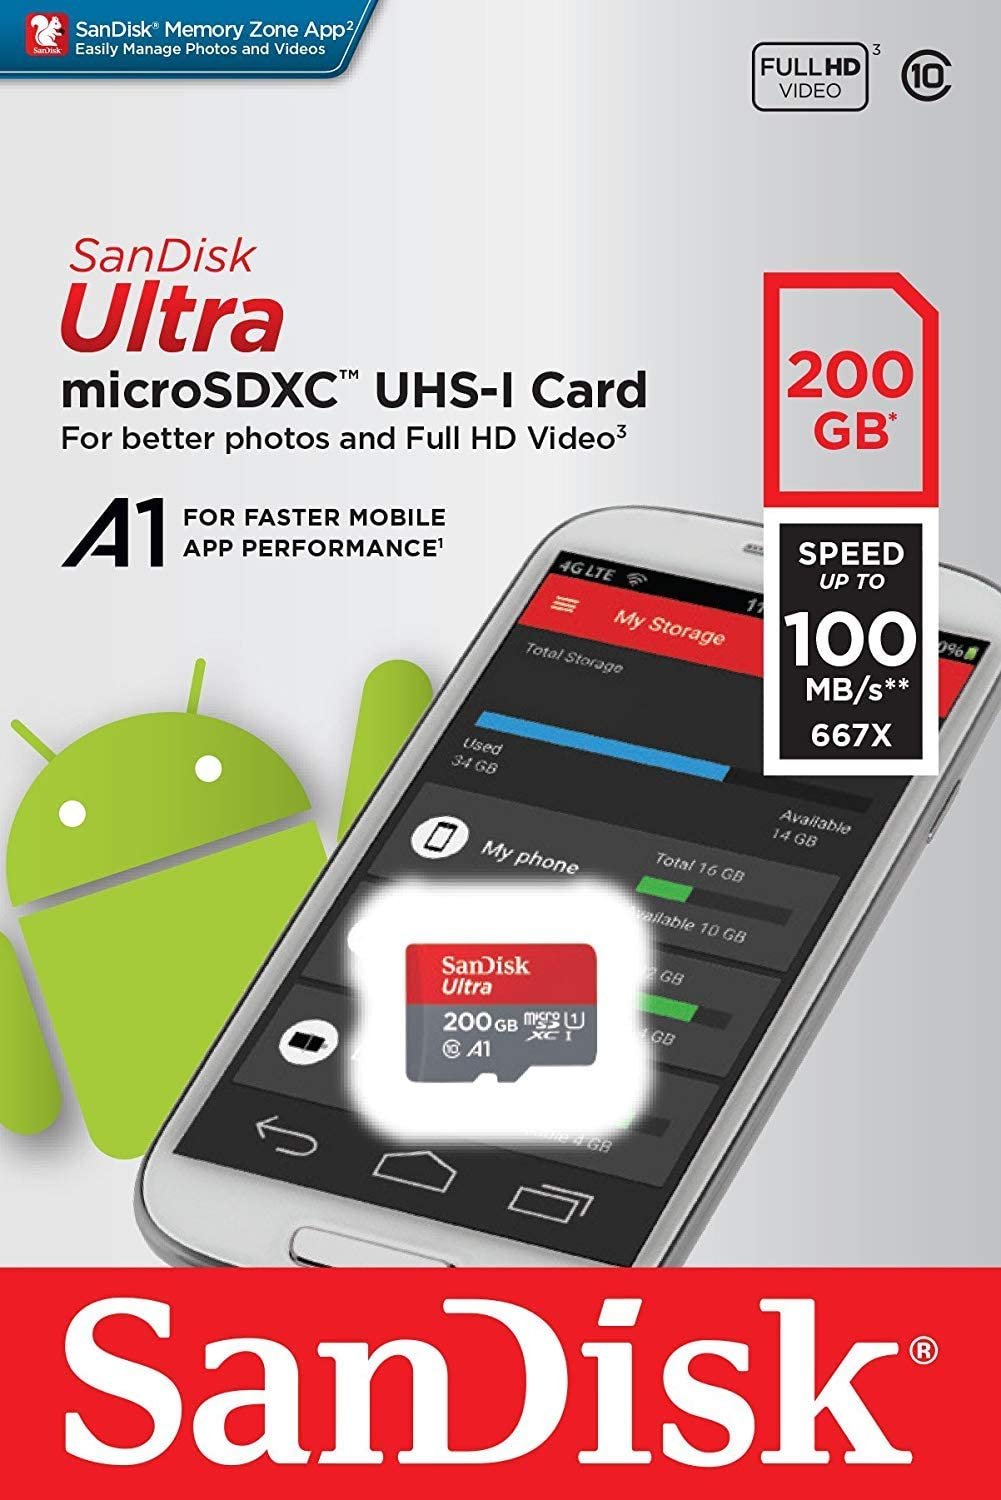 100MBs A1 U1 C10 Works with SanDisk SanDisk Ultra 200GB MicroSDXC Verified for Lenovo Yoga 2 8-inch Android by SanFlash